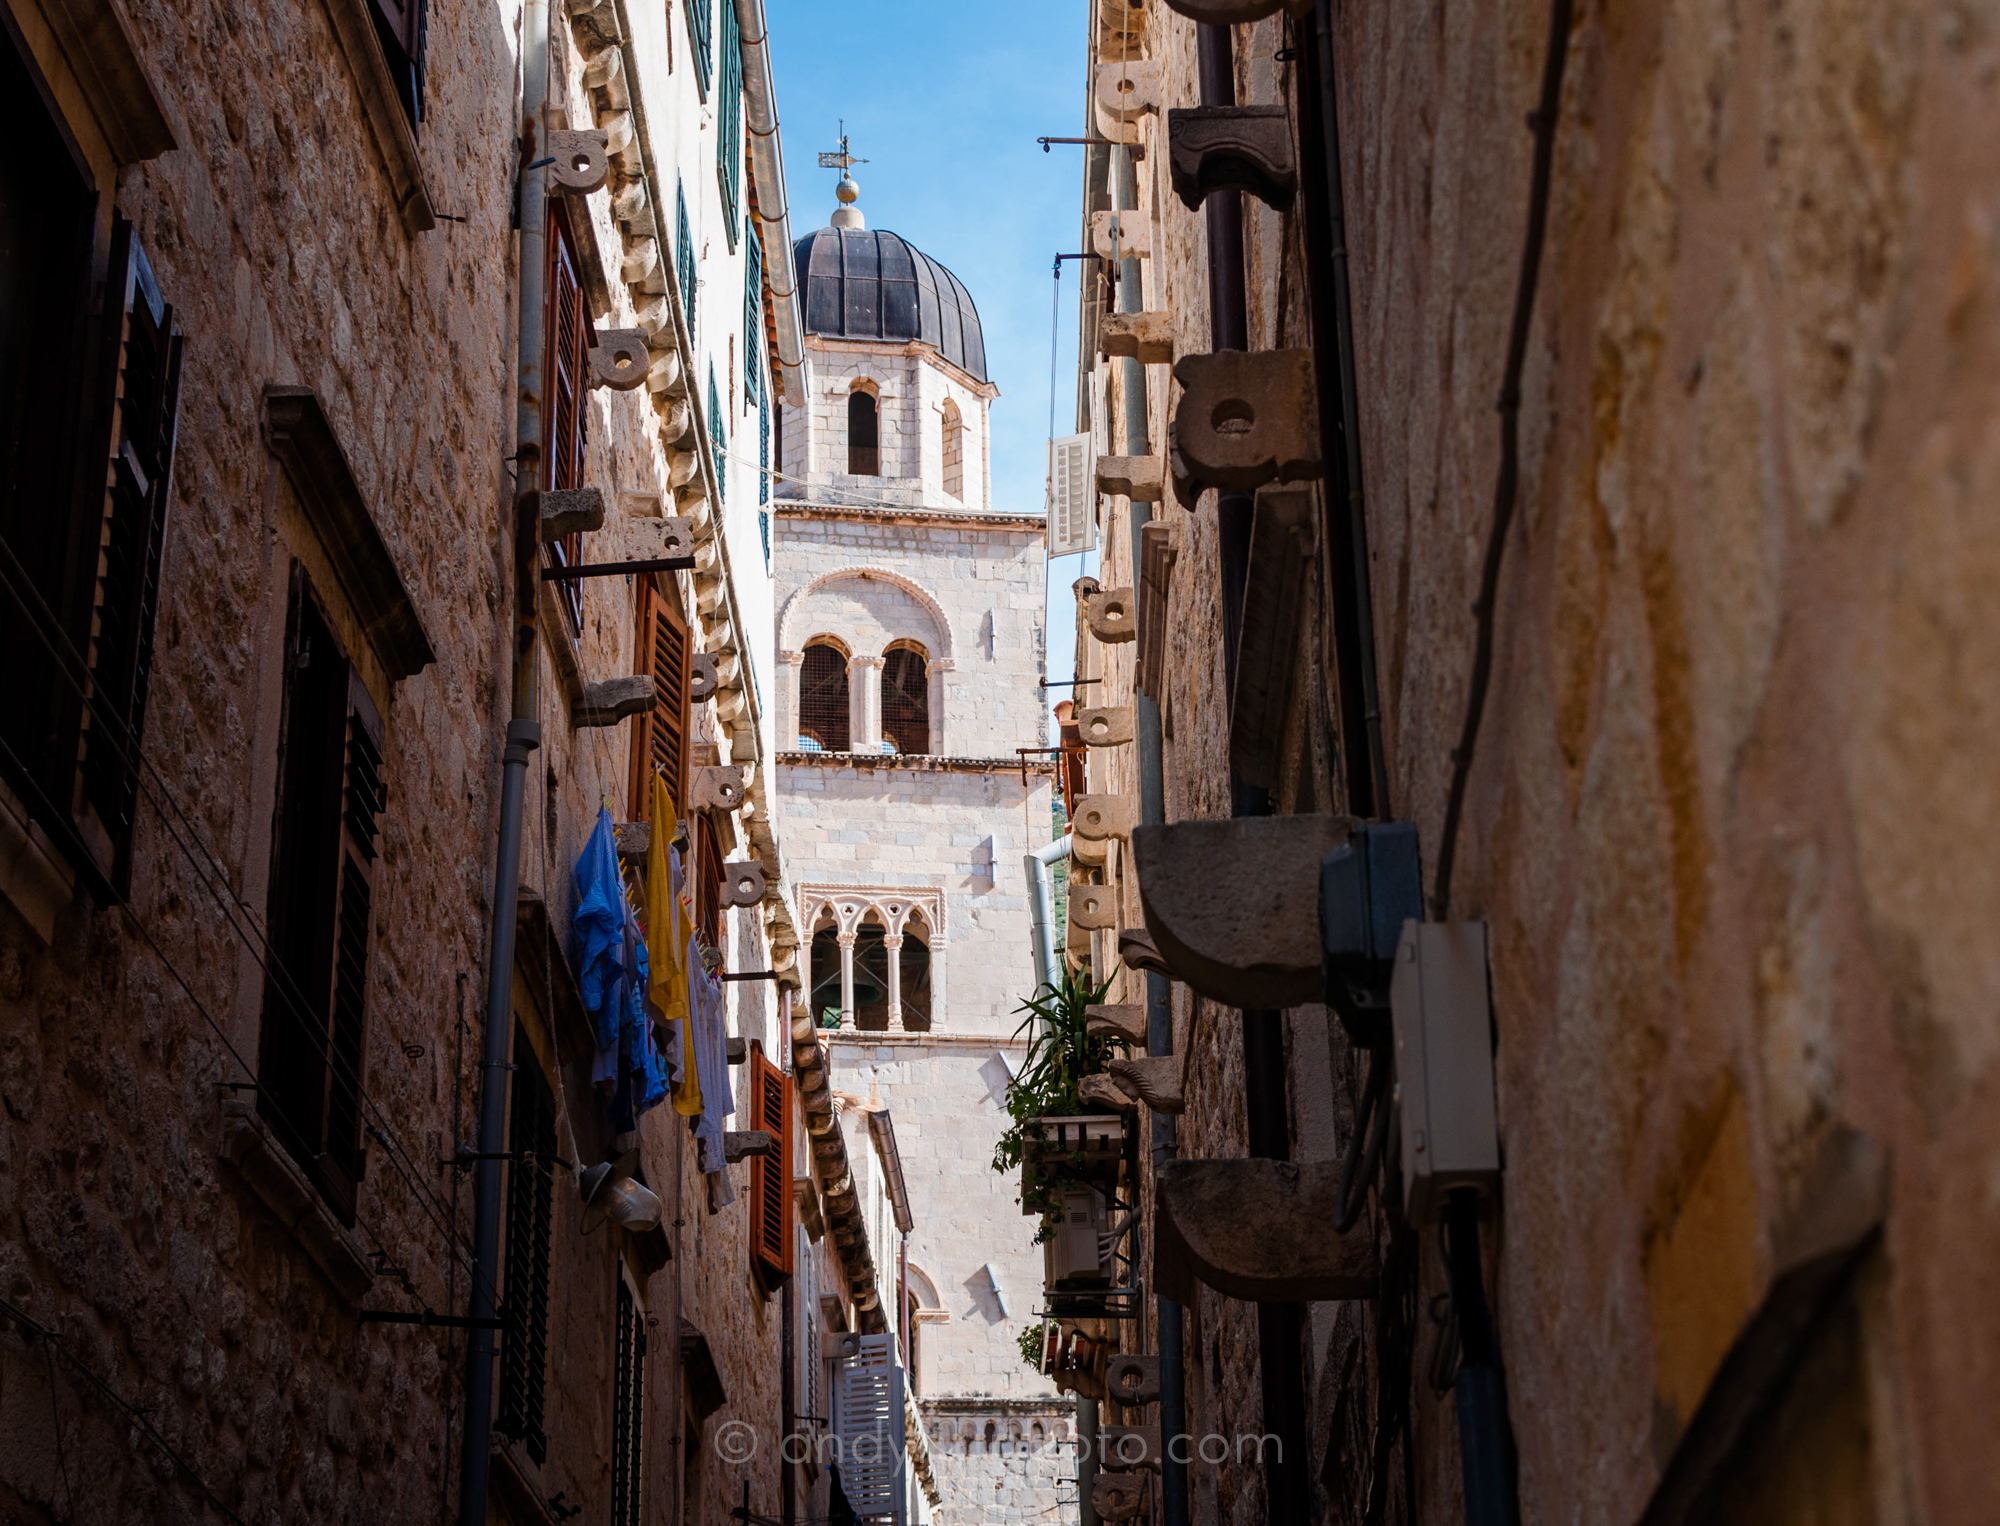 A King's Landing Moment in the narrow streets of Dubrovnik Grad